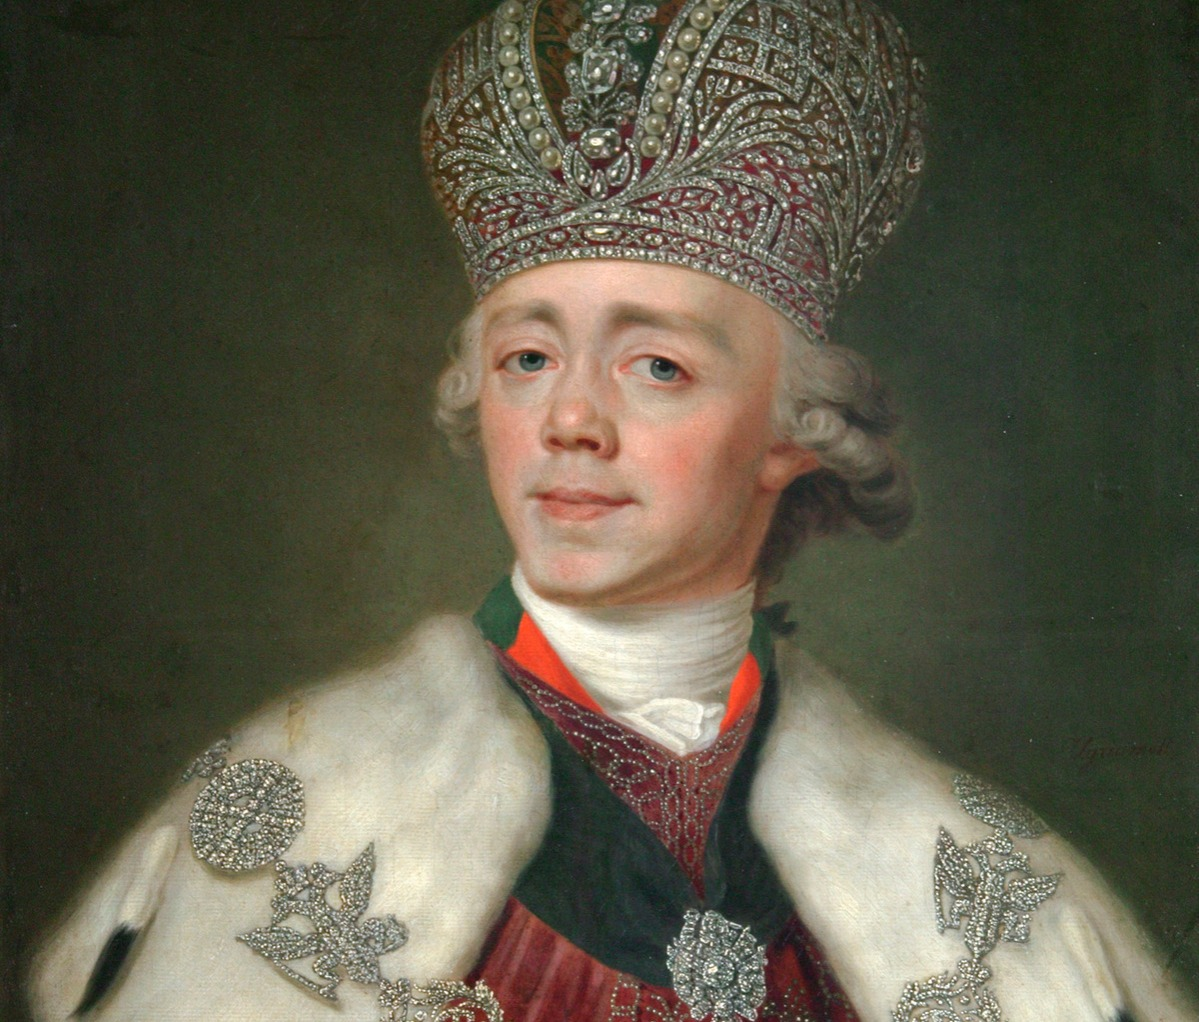 Paul I claims throne after Catherine the Great, but his reign goes as terribly as Catherine feared.